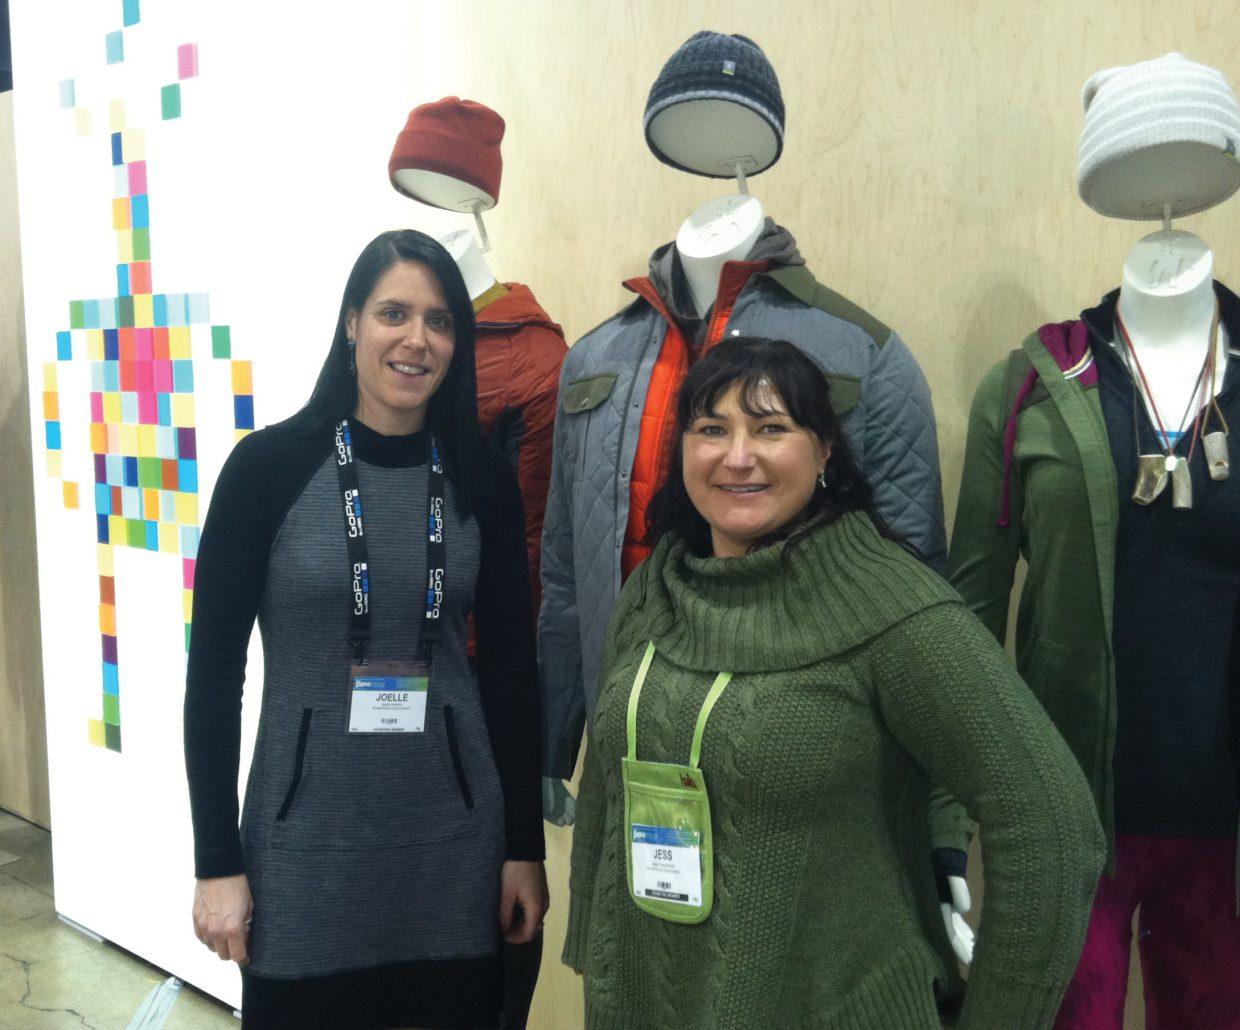 Smartwool employees Joelle Hamm and Jess Feinerman hawk socks at Denver's annual Snowsports Industries America Snow Show, which continues through today at the Colorado Convention Center.